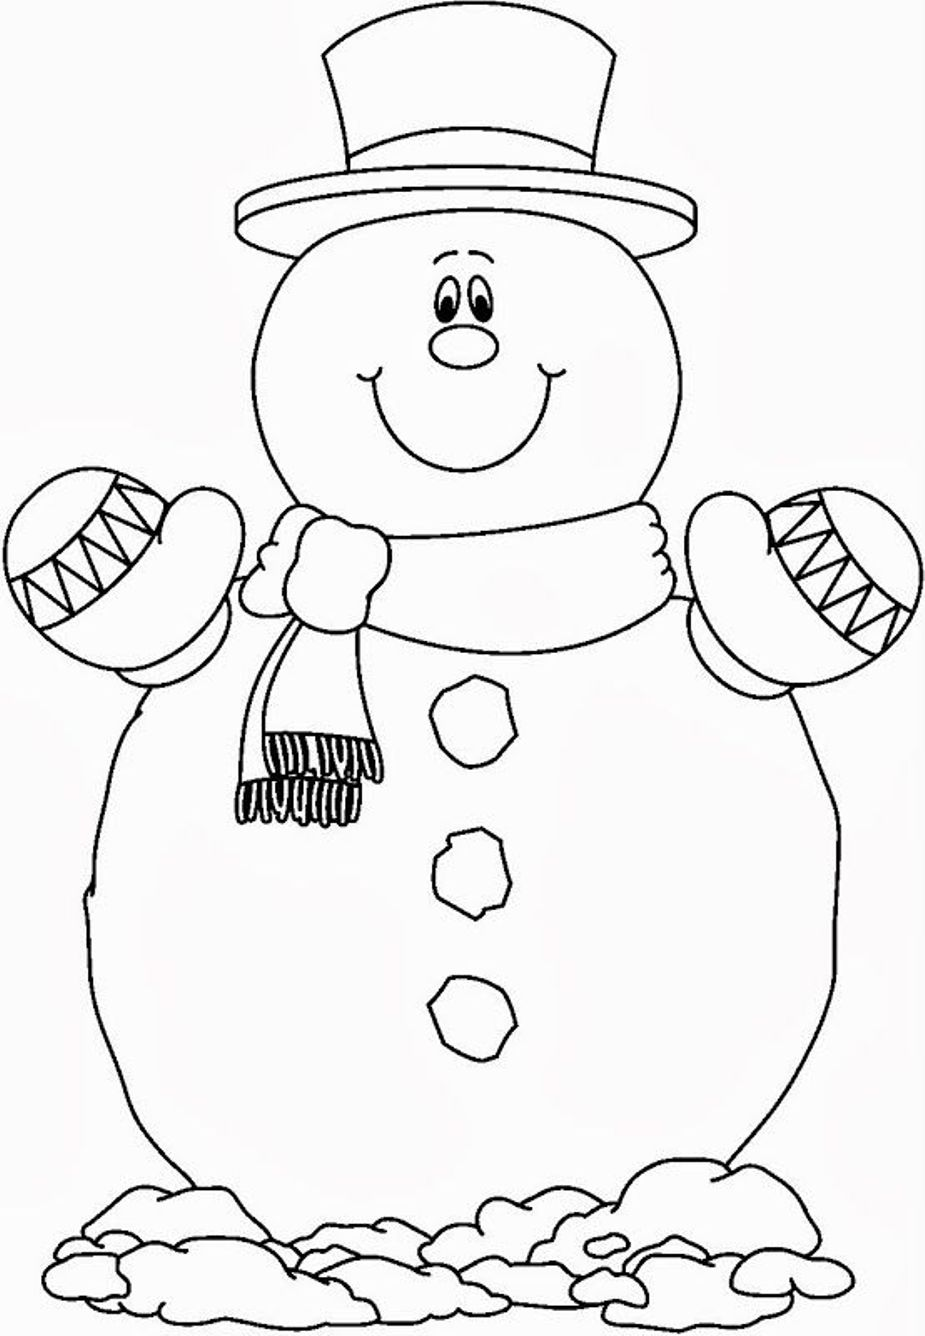 925x1336 Coloring Page Snowman Color Pages Tryonshorts Of Animals For 4